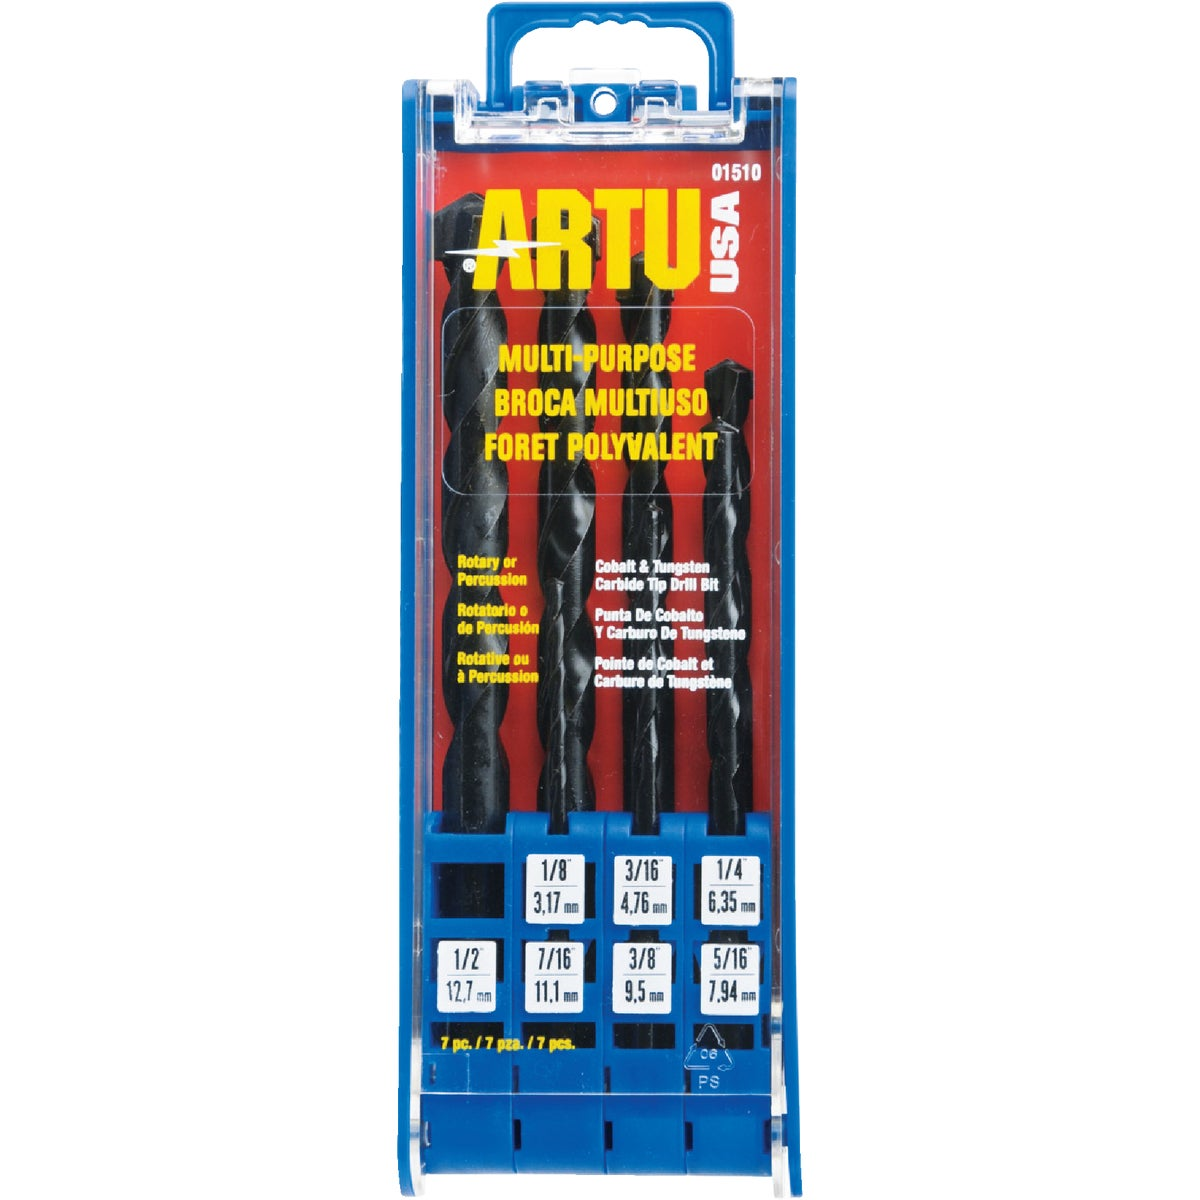 7PC DRILL BIT SET - 01510 by Artu Usa Inc